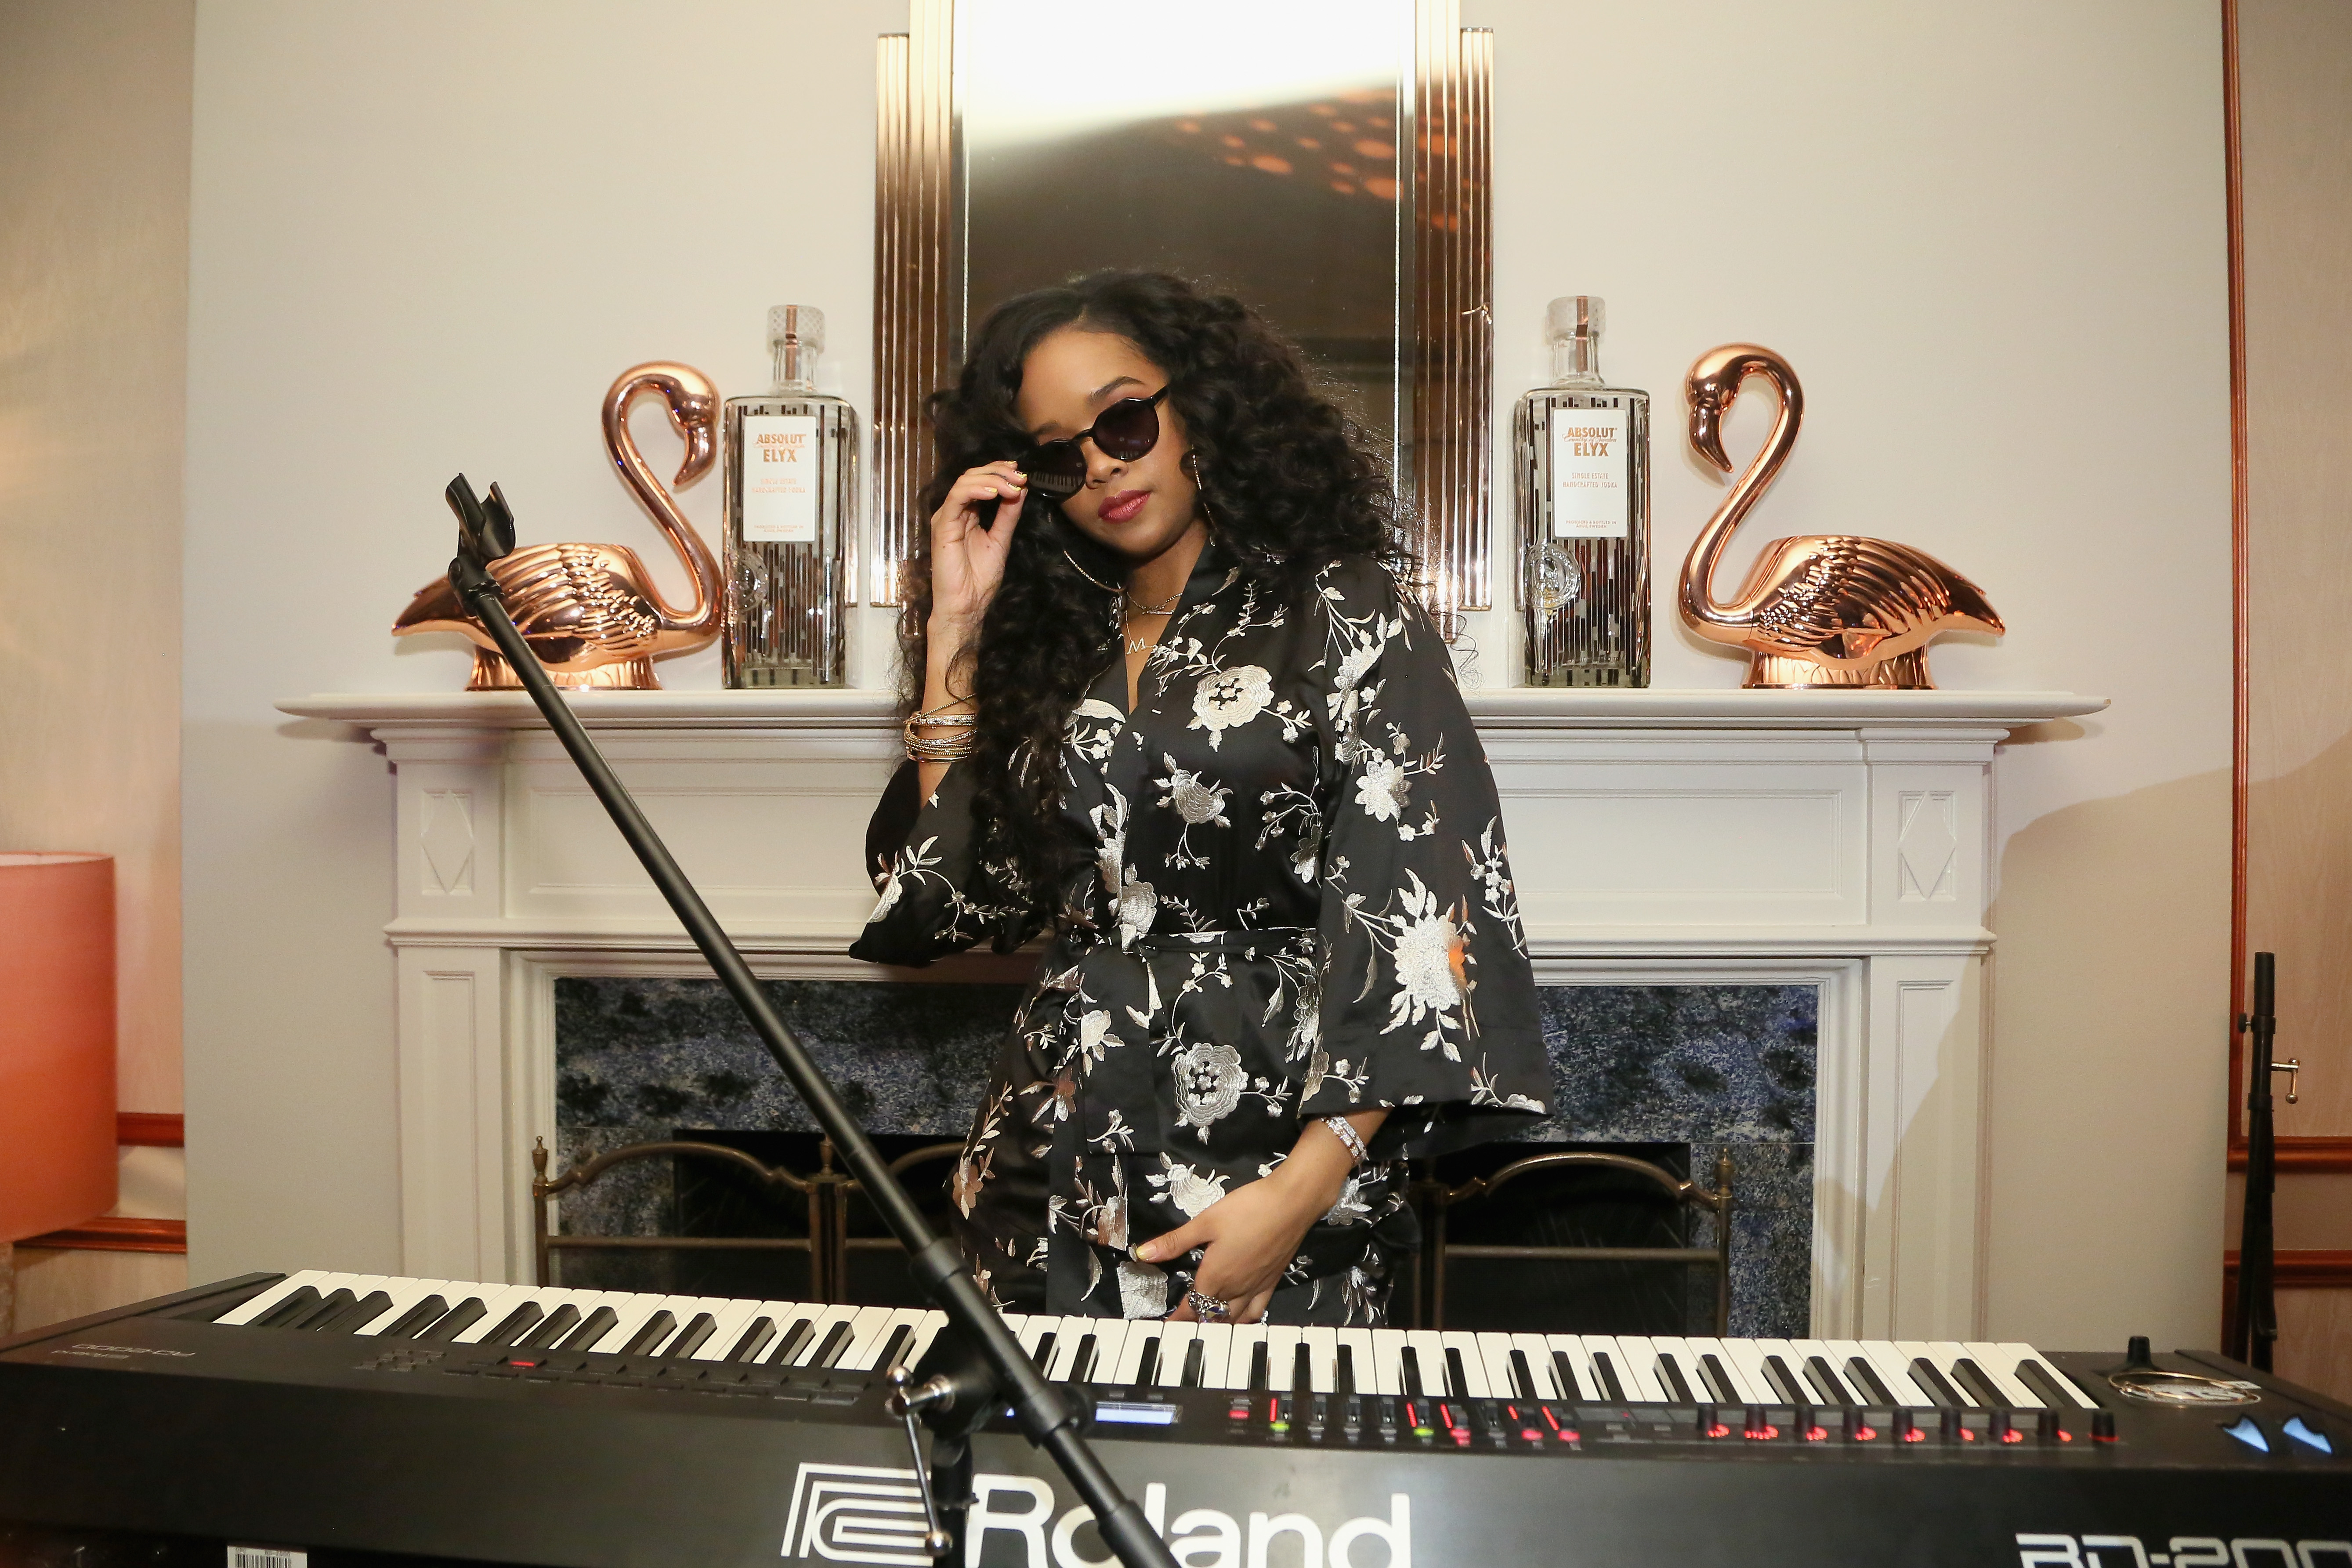 BASIC Magazine & H.E.R. Pre-Grammy Party with Absolut Elyx